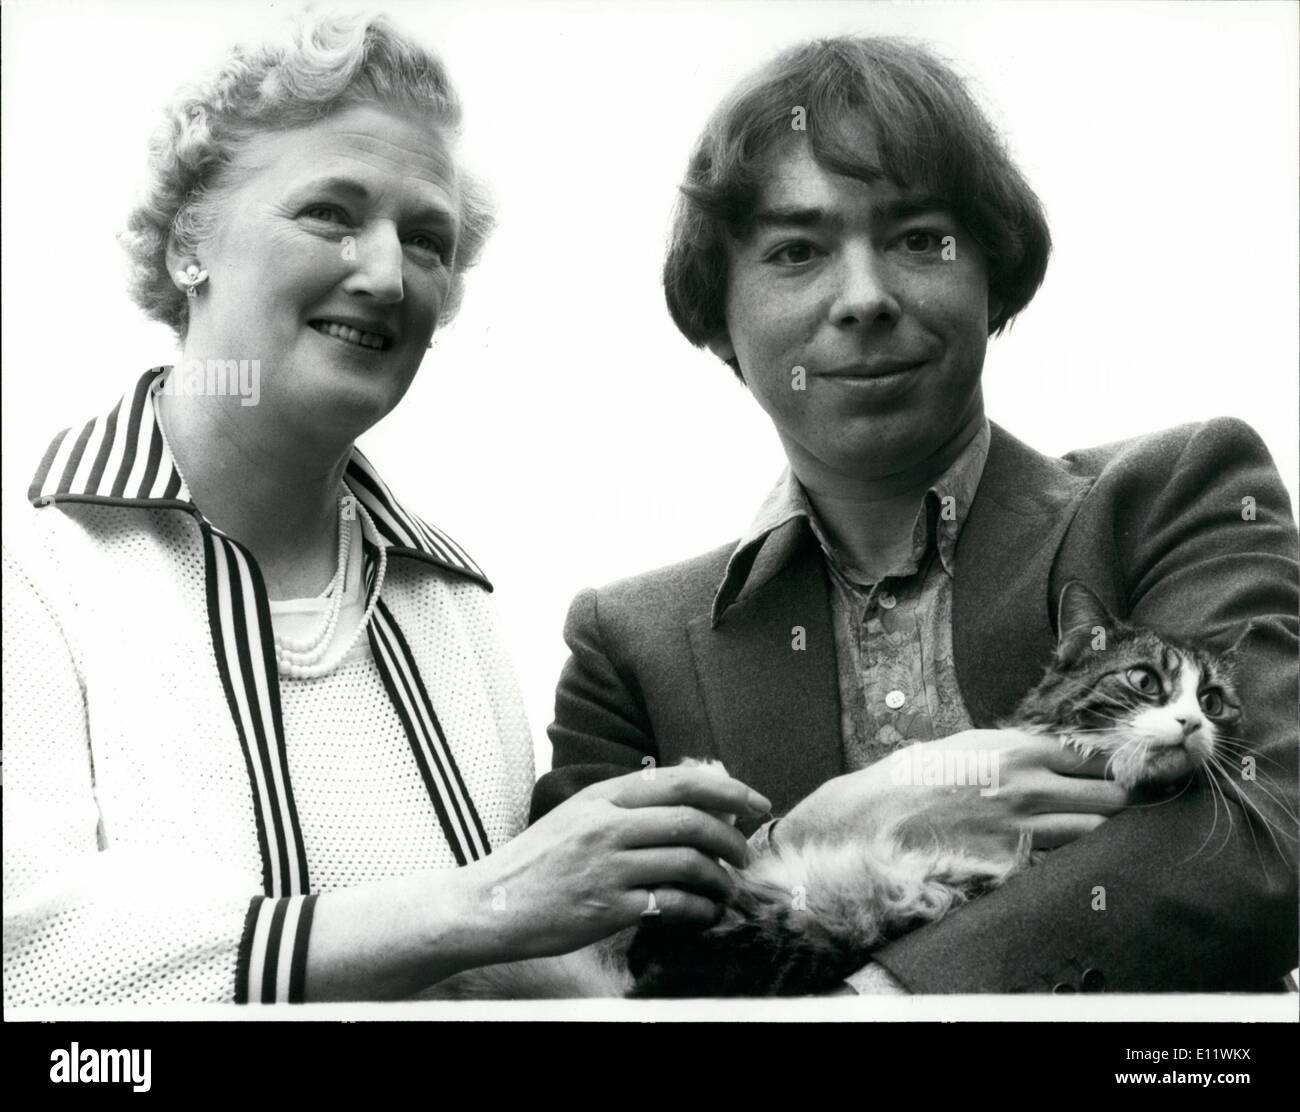 Sep. 09, 1980 - NEW LLOYD WEBBER MUSICAL FOR WEST END ''Cats'' is the title of new musical by Andrew Lloyd Webber announced today. It will be the first West End musical by him since the award-winning ''Evita'' opened in London in June 1978. Inspired by poems both published and unpublished by T S Eliot, including the internationally famous ''Old Possums Book of Practical Cats'', itvis scheduled to, open in London in April 1981. The new show will be directed by Trevor Nunn of the Royal Shakespeare Company and choreographed by Billian Lynne Stock Photo